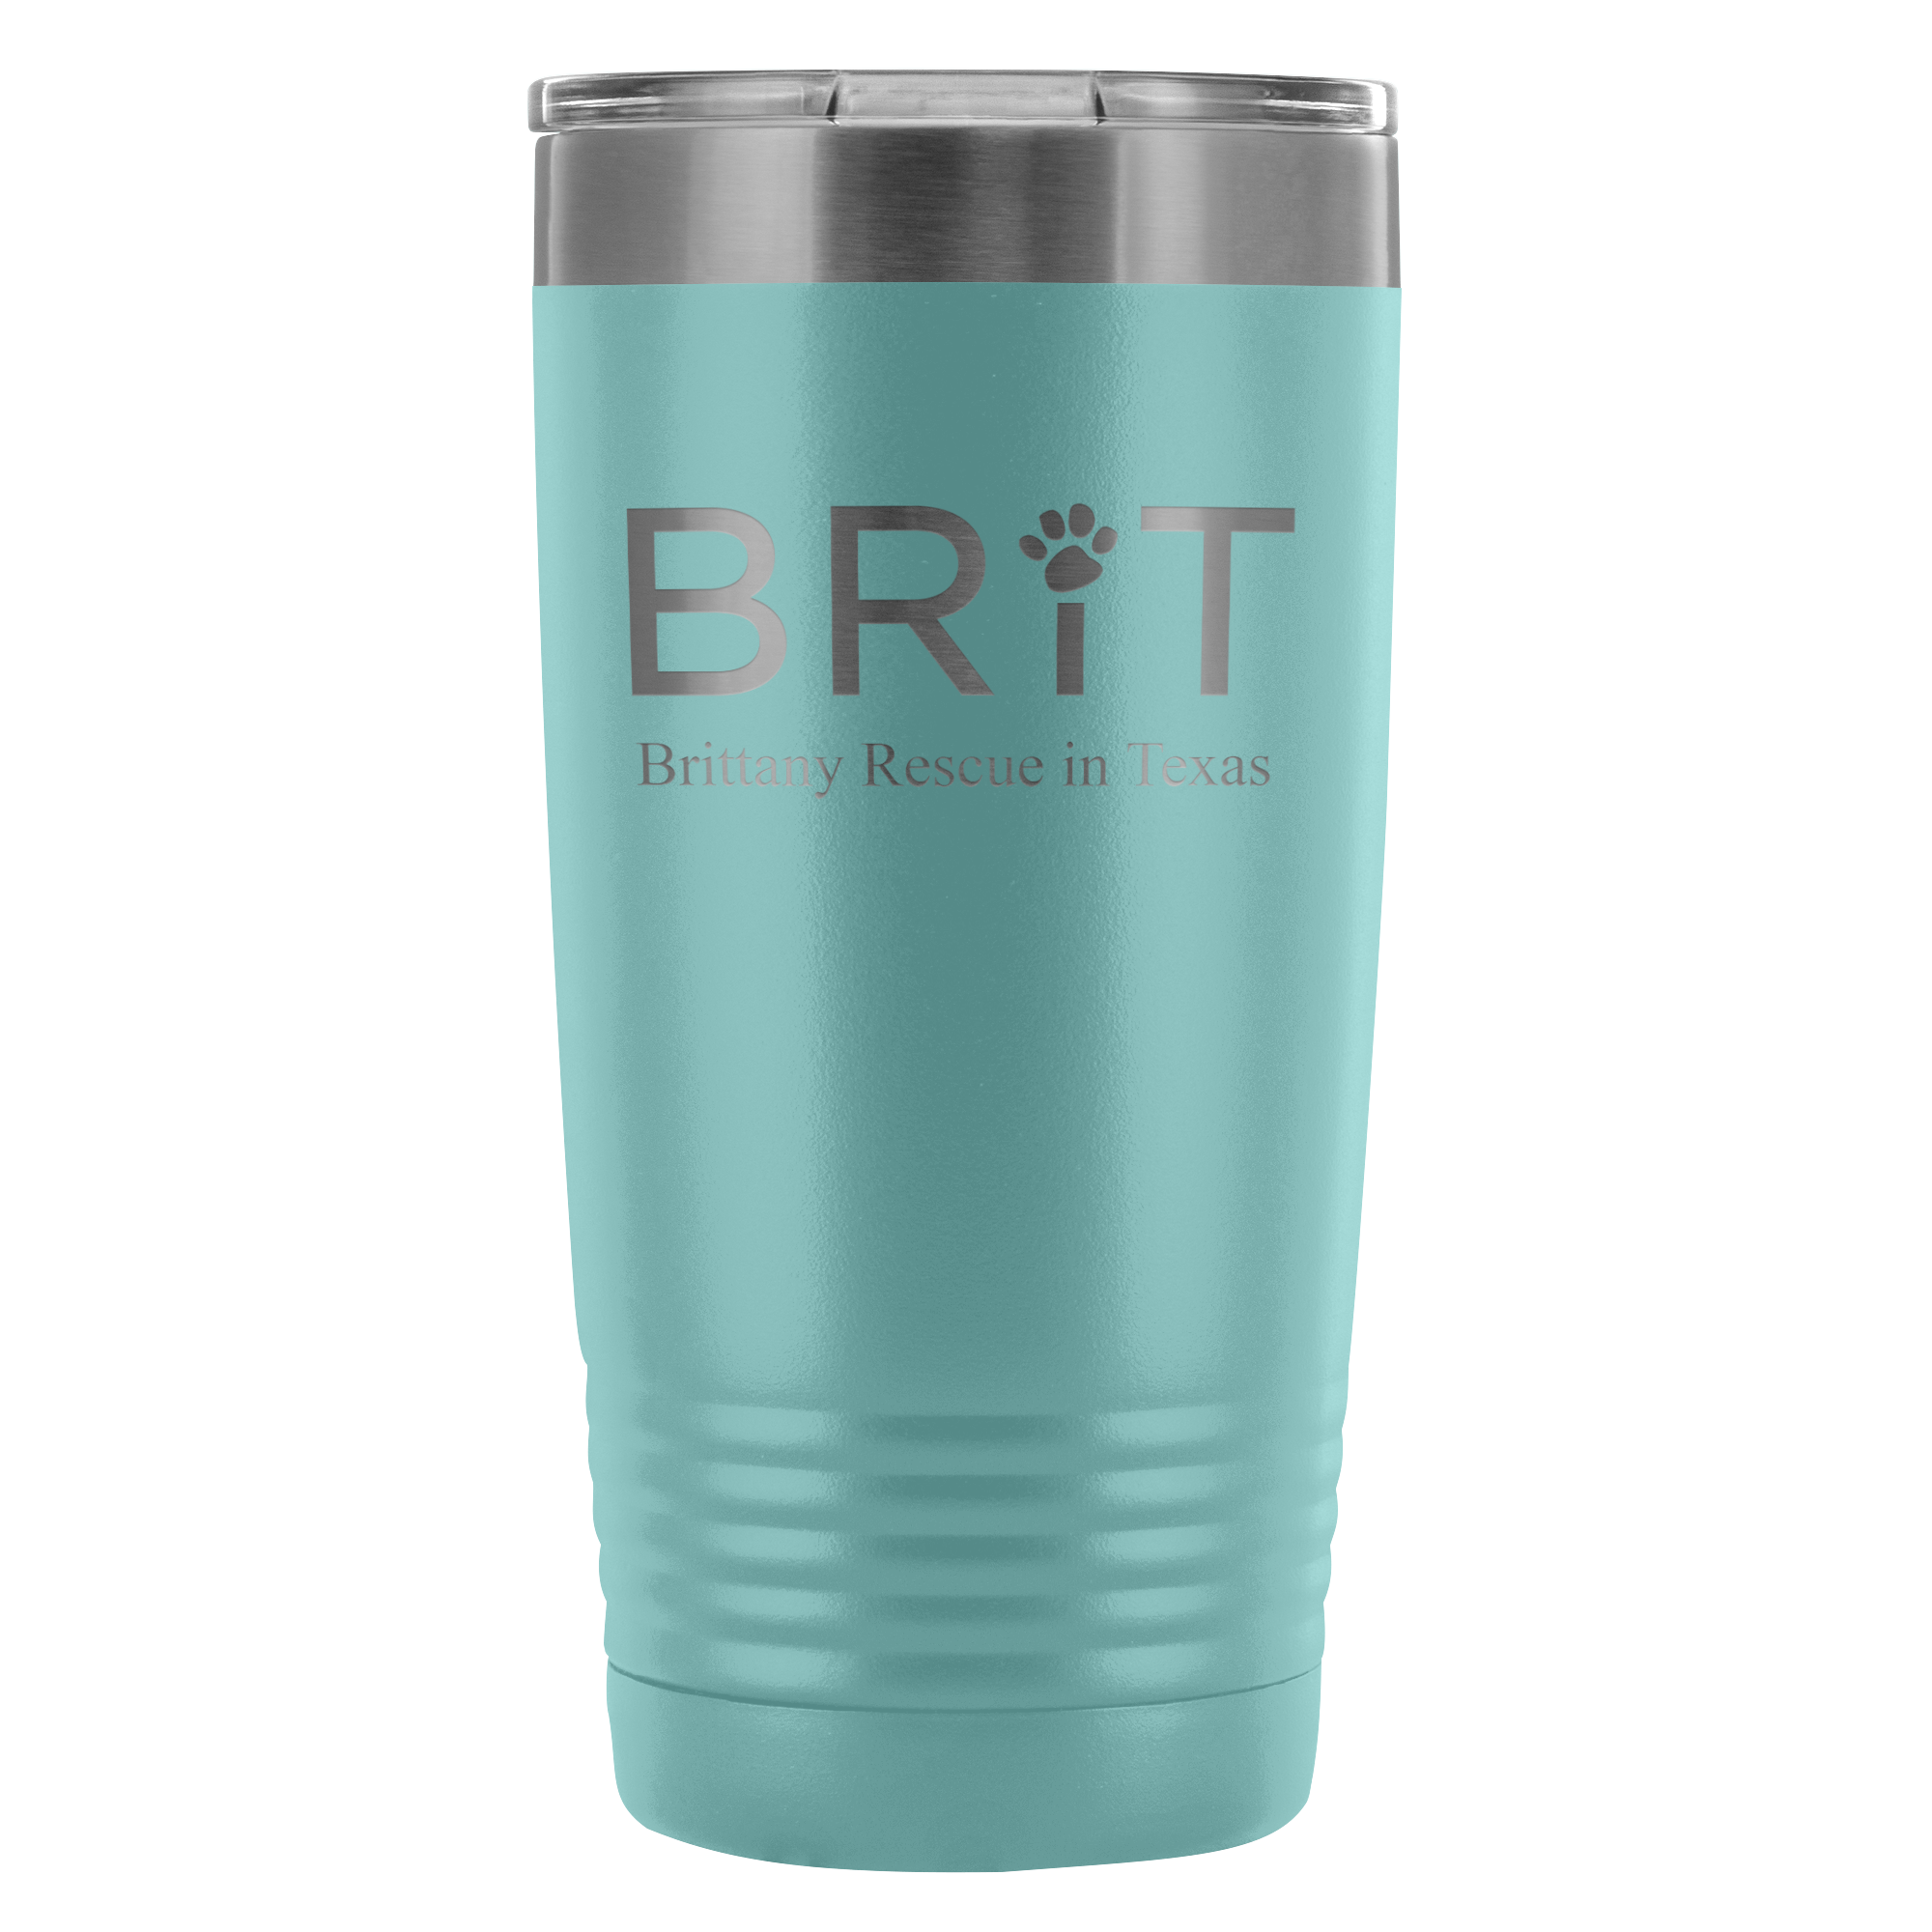 BRIT Rescue in Texas - 20 oz. Tumbler